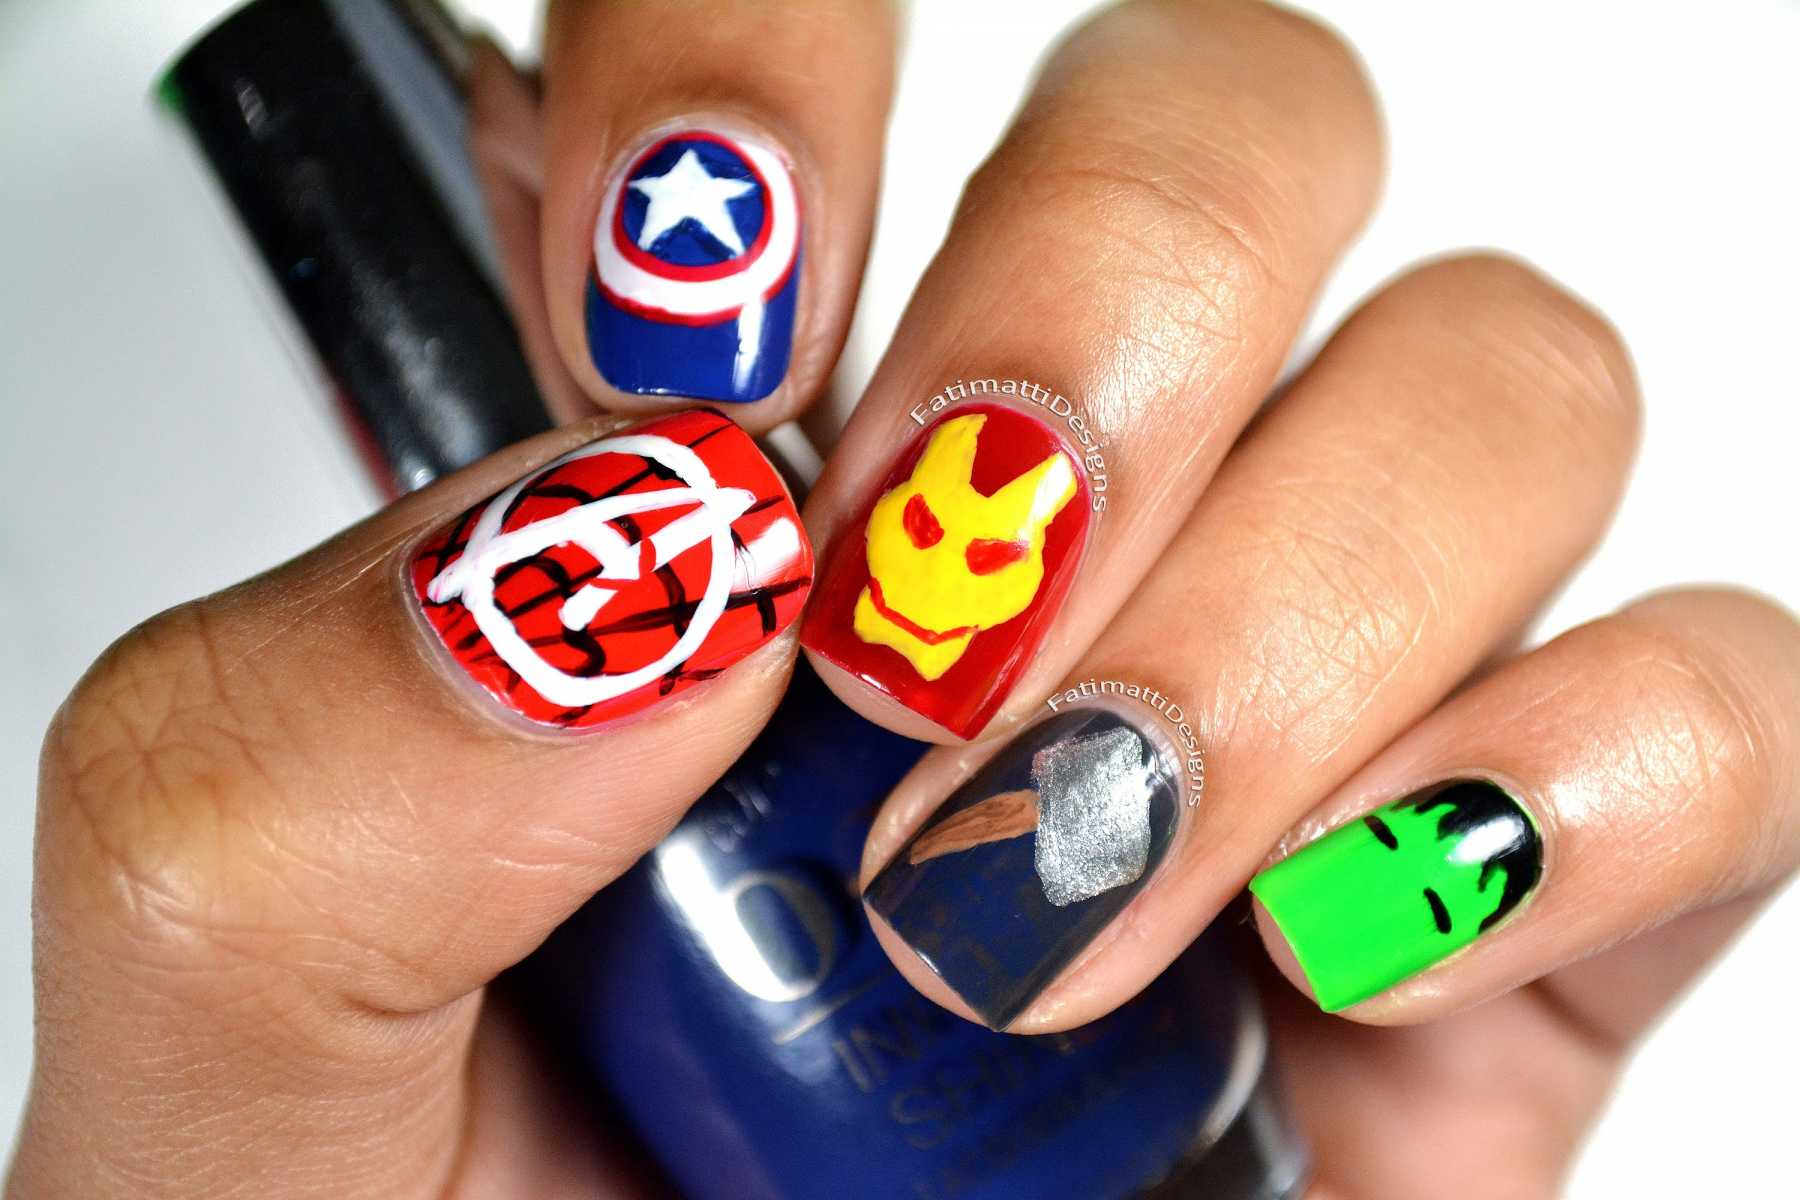 Why Isn't There An Official Avengers-Themed Nail Polish Collection? | nail polish